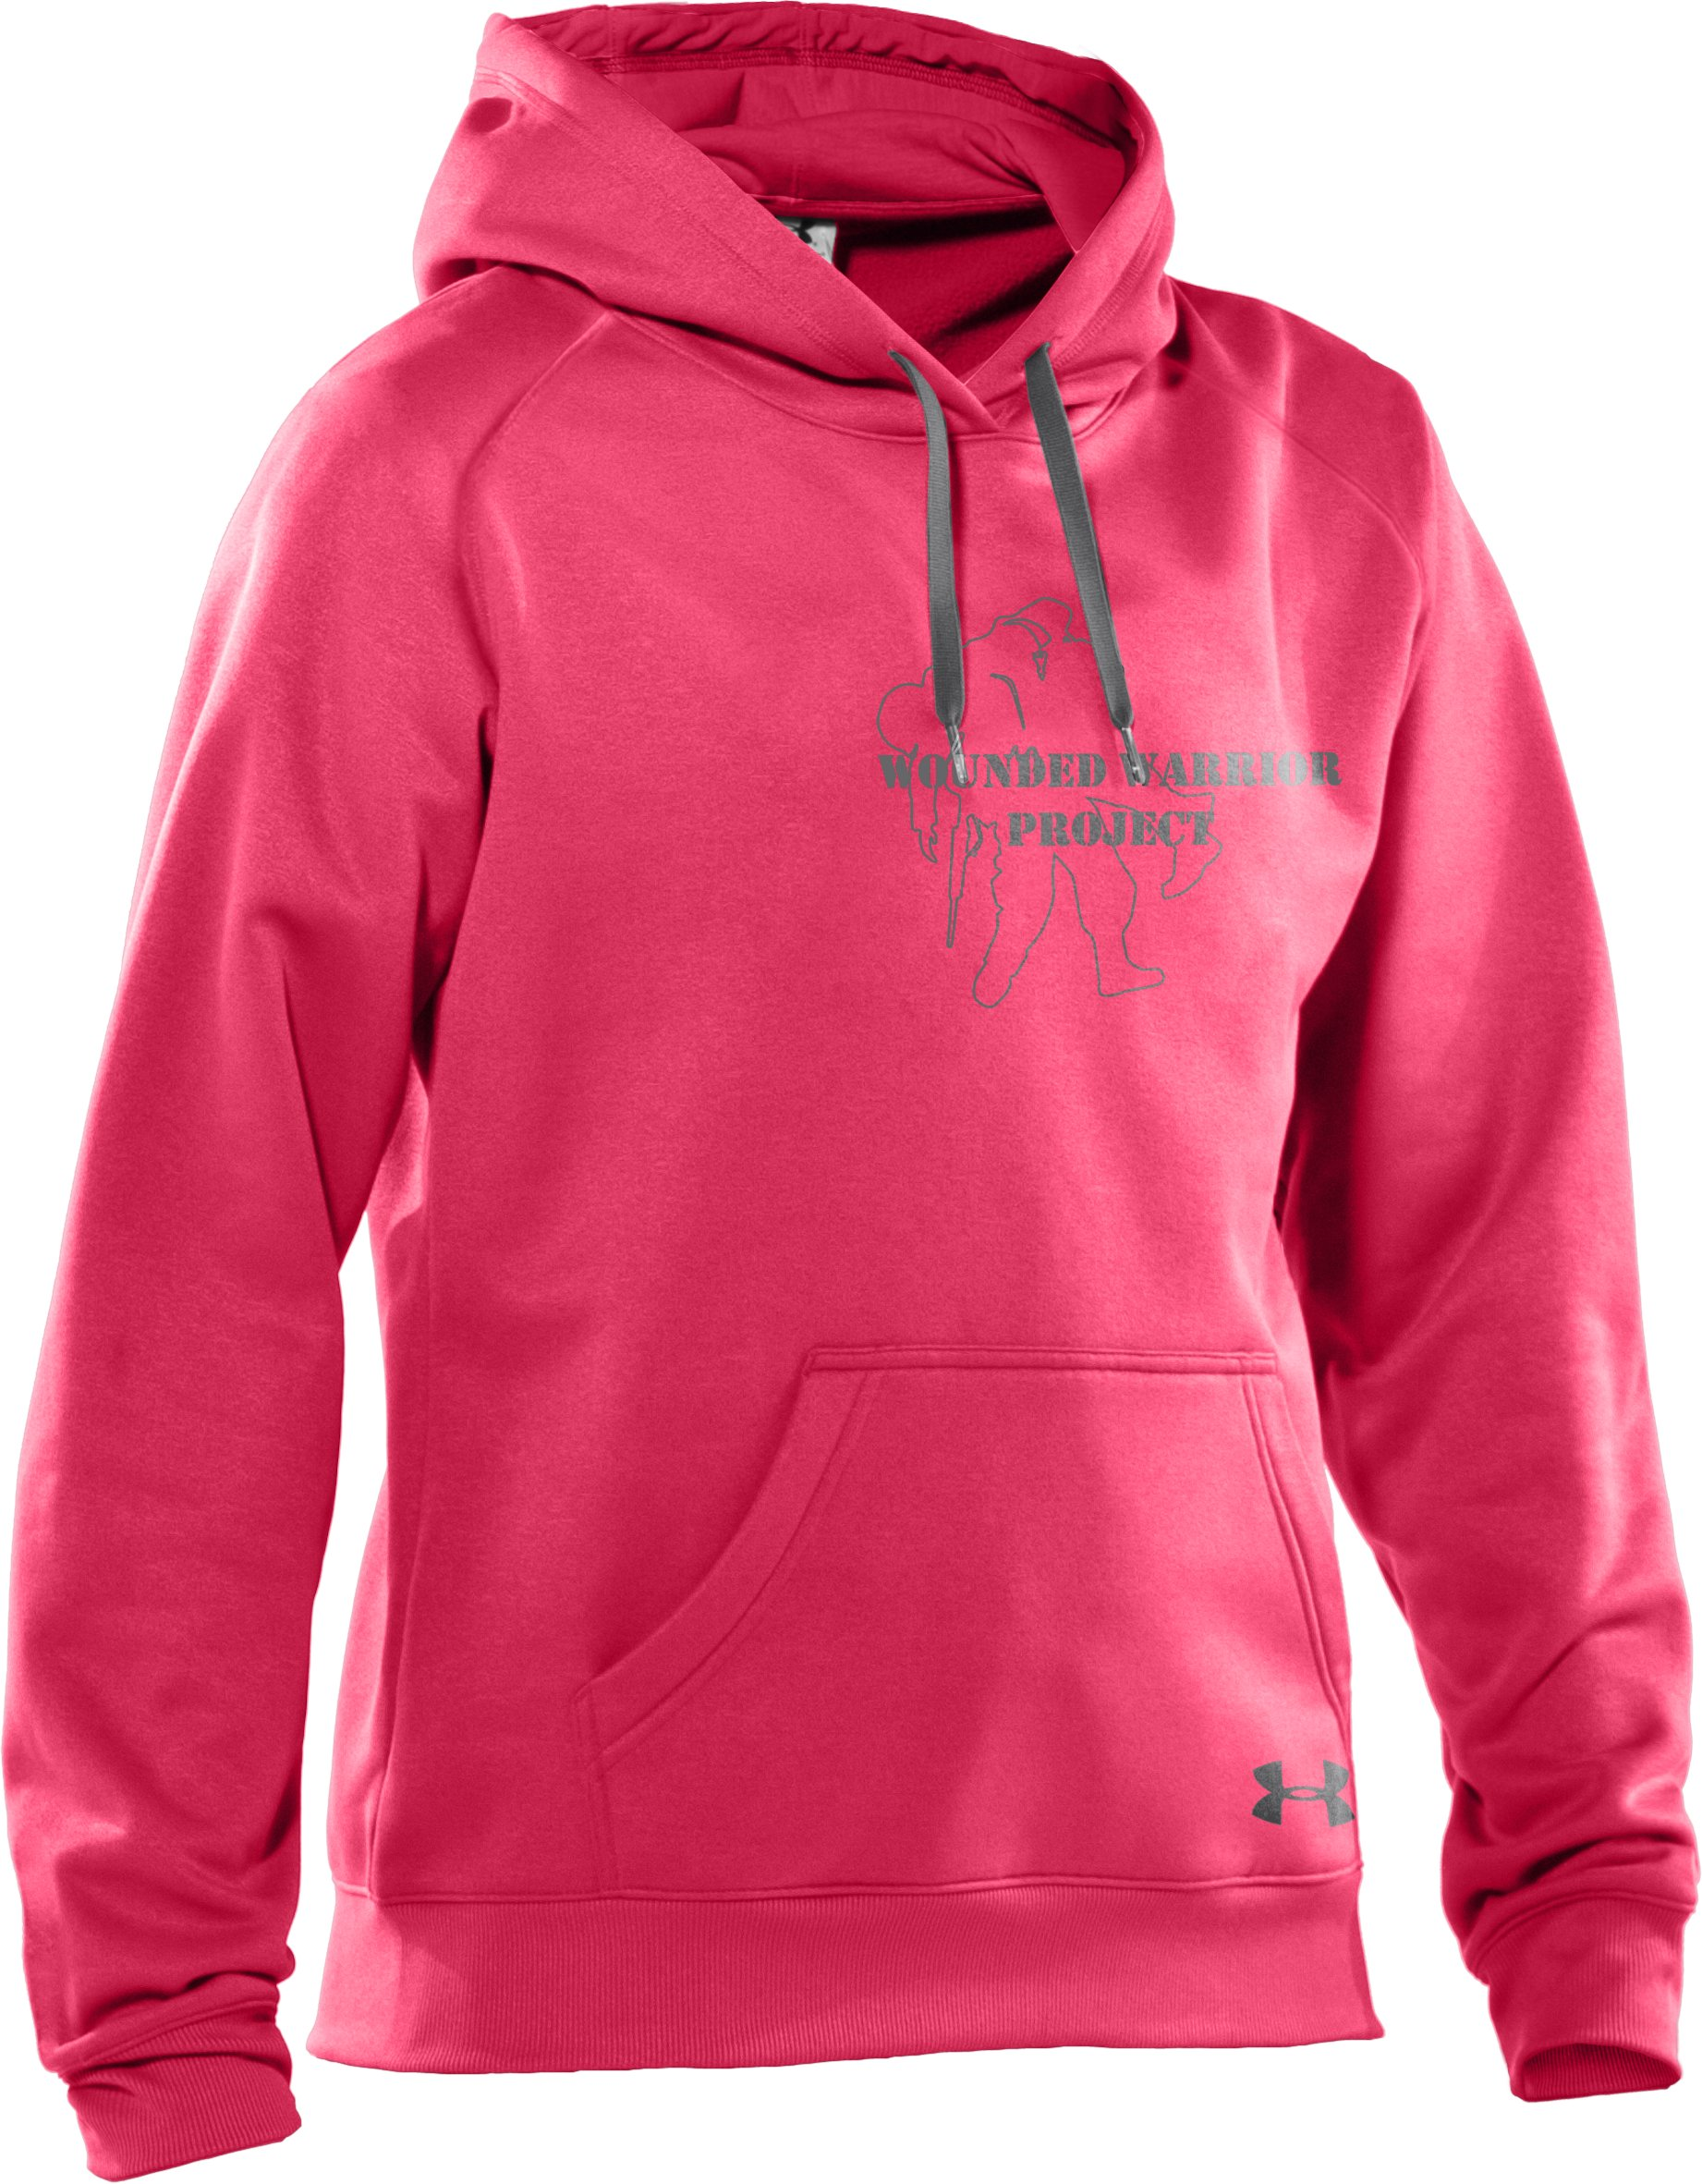 Women's WWP Hoodie, Perfection